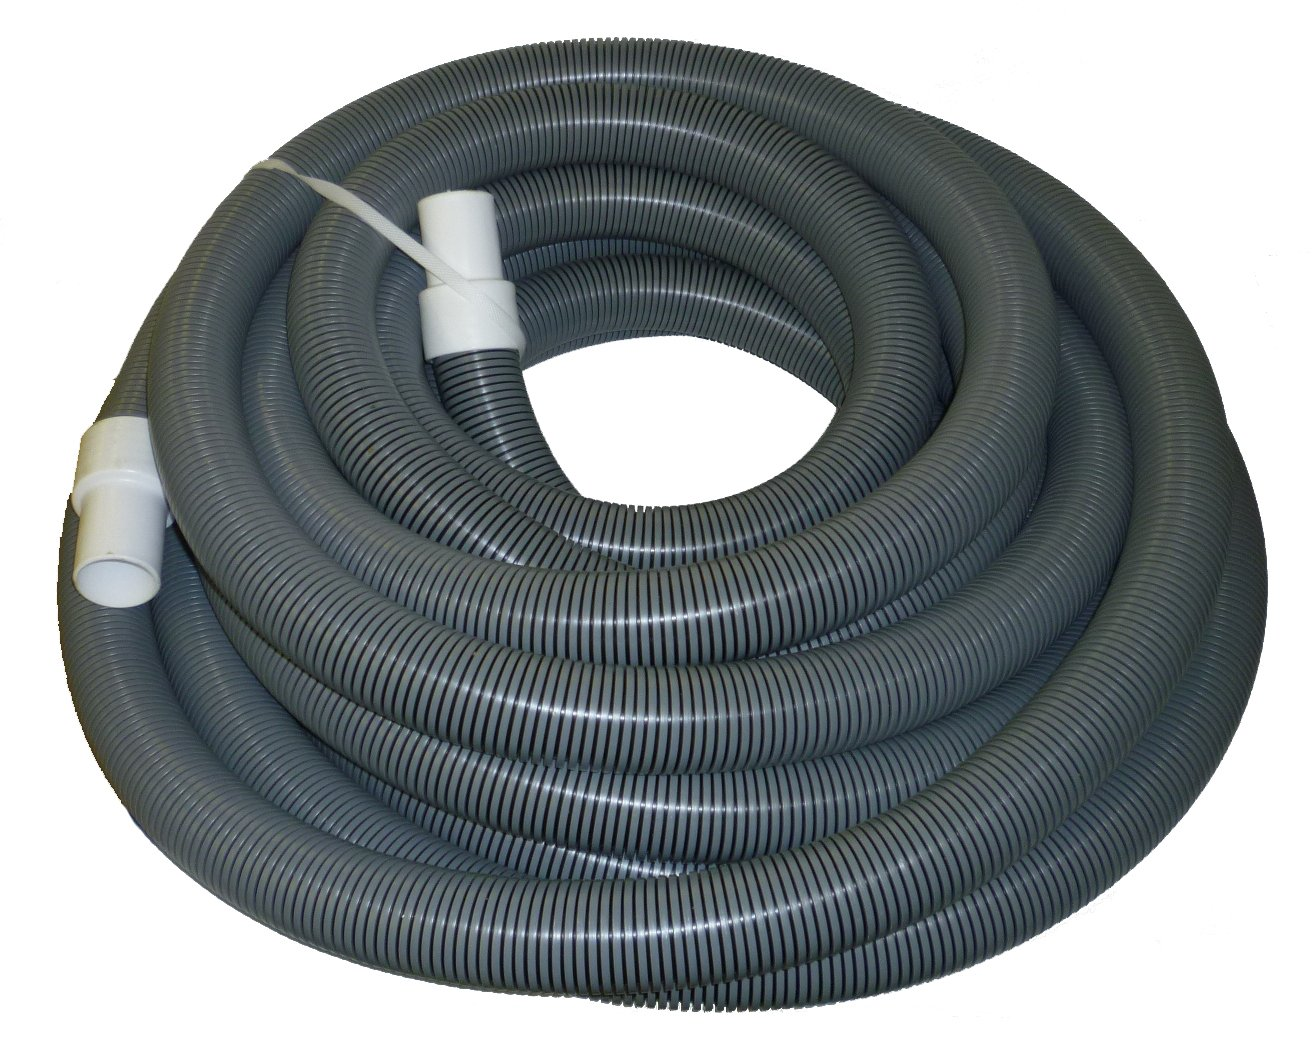 2'' x 50' Gray/Black I-Helix Commercial TM Vacuum Hose with White Cuffs